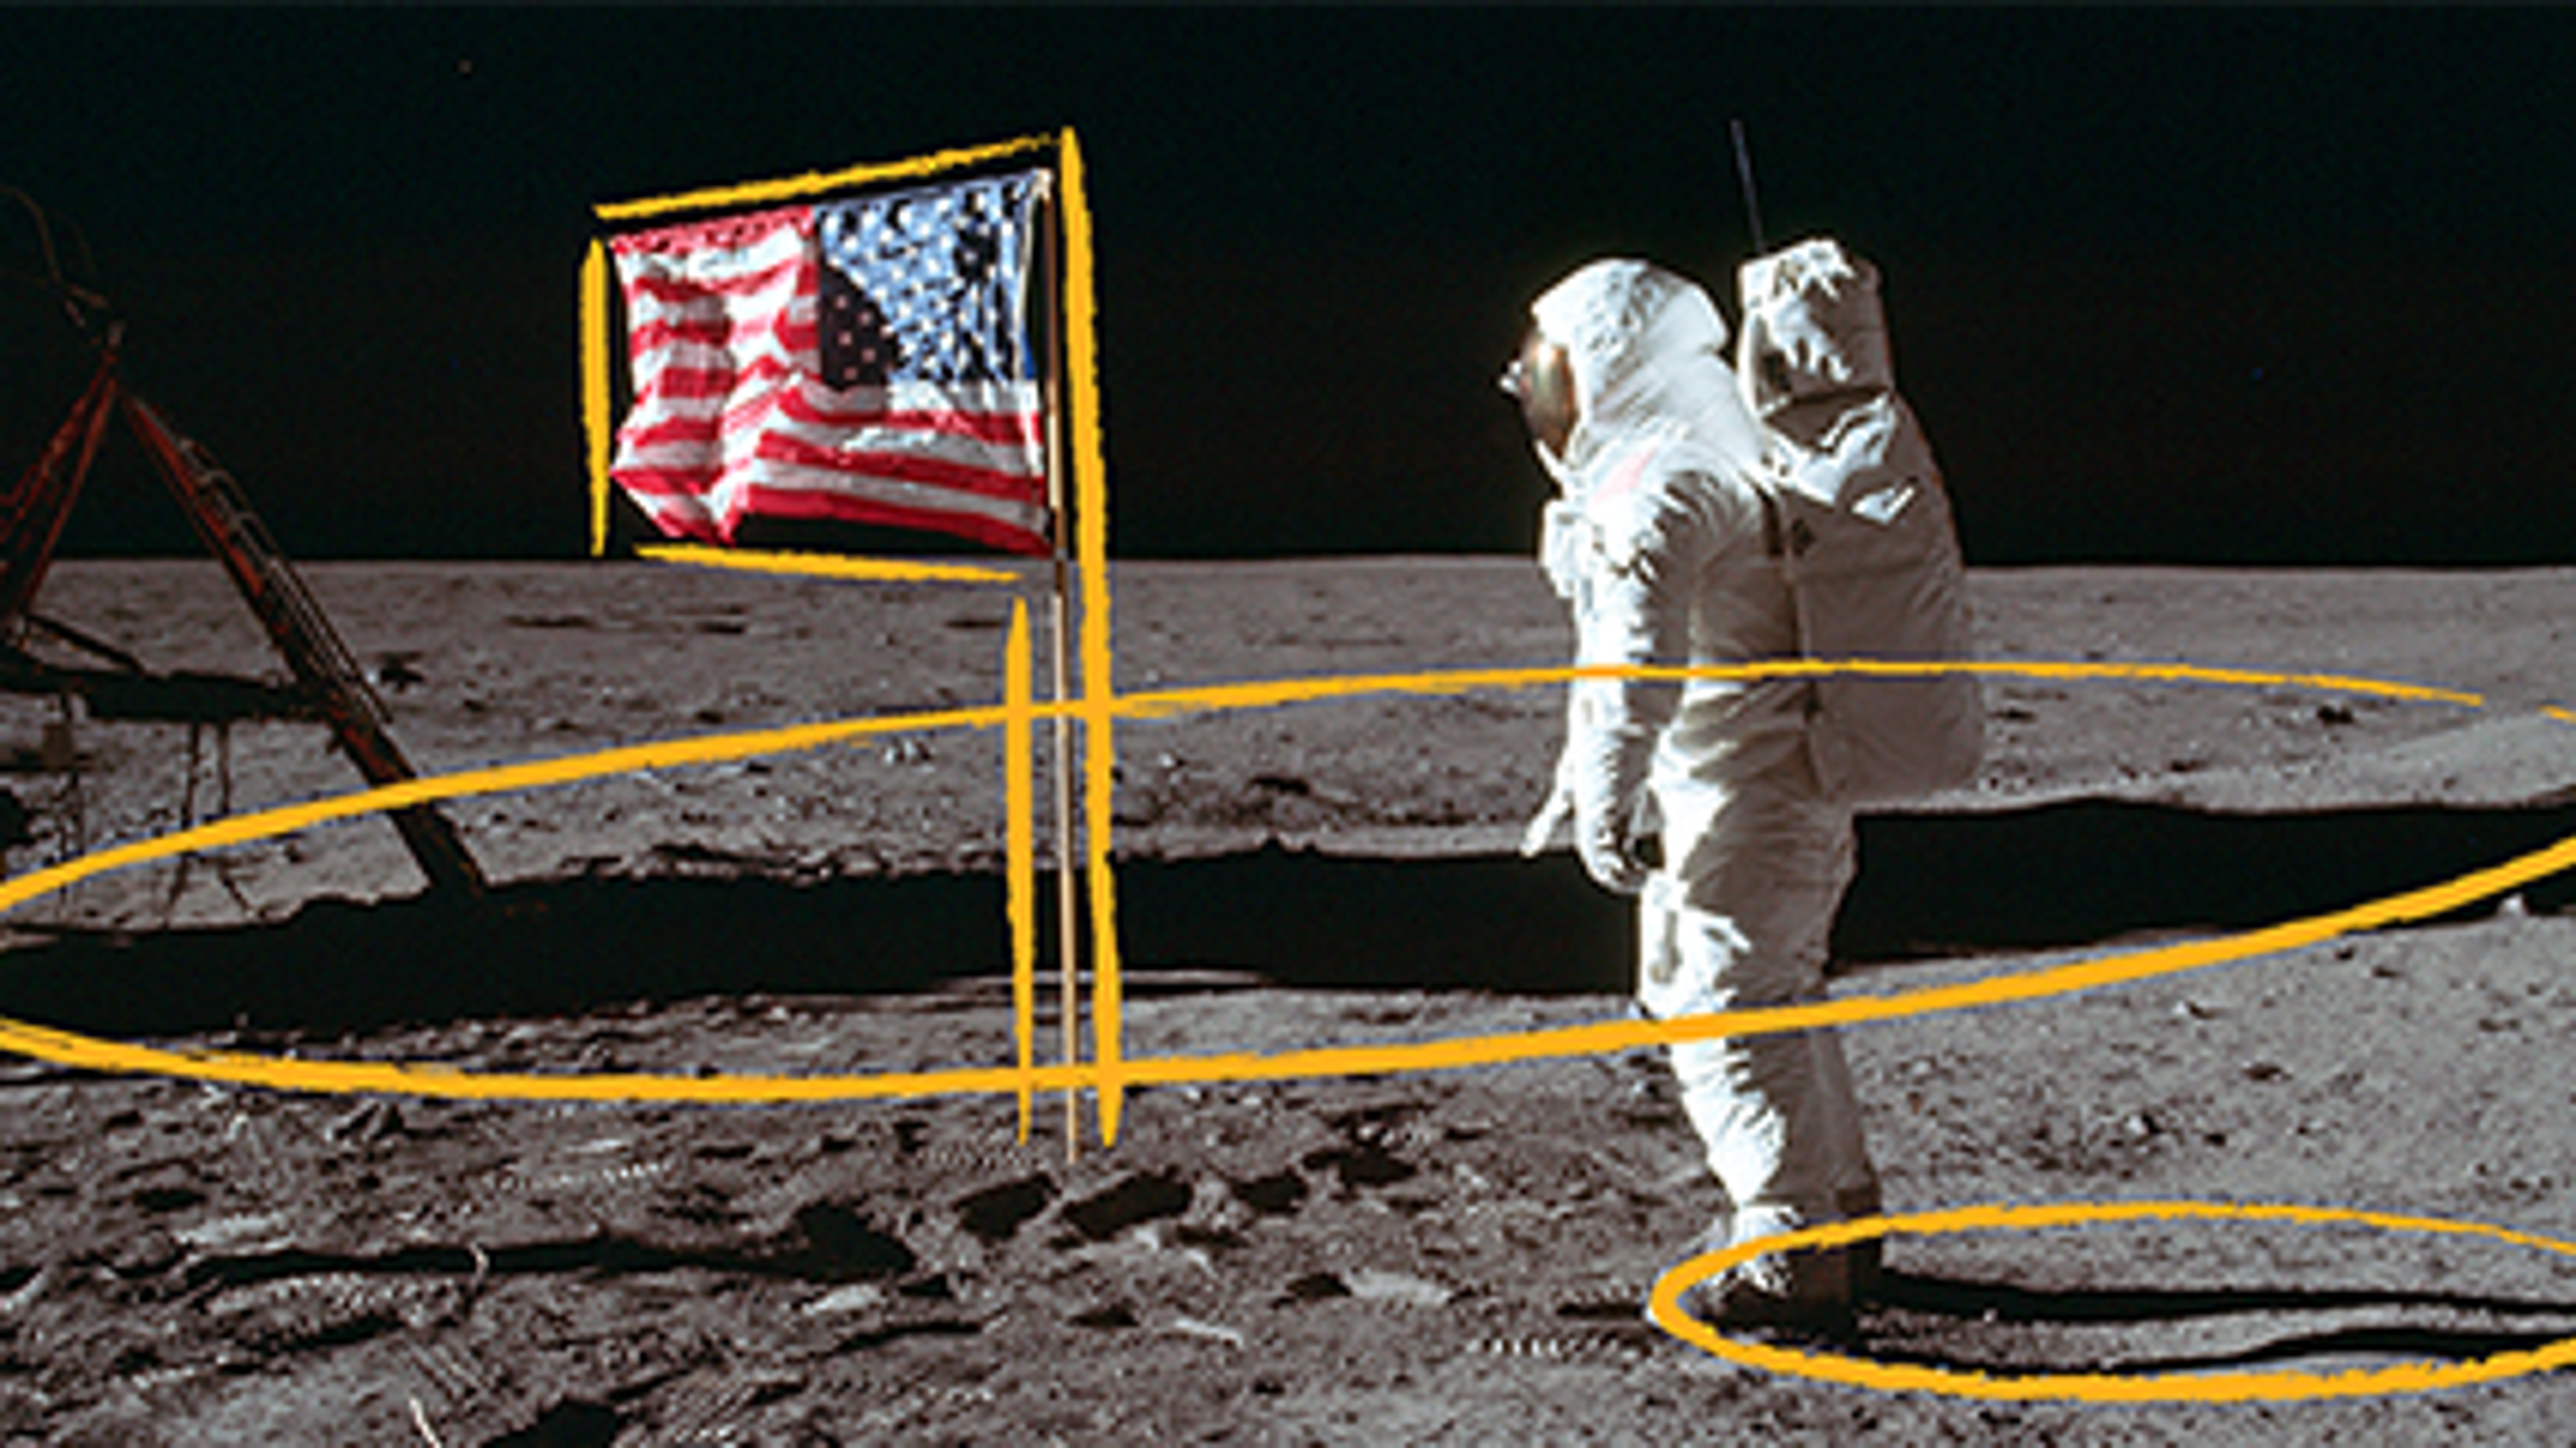 Apollo 11 moon landing: What you can't see in Buzz Aldrin